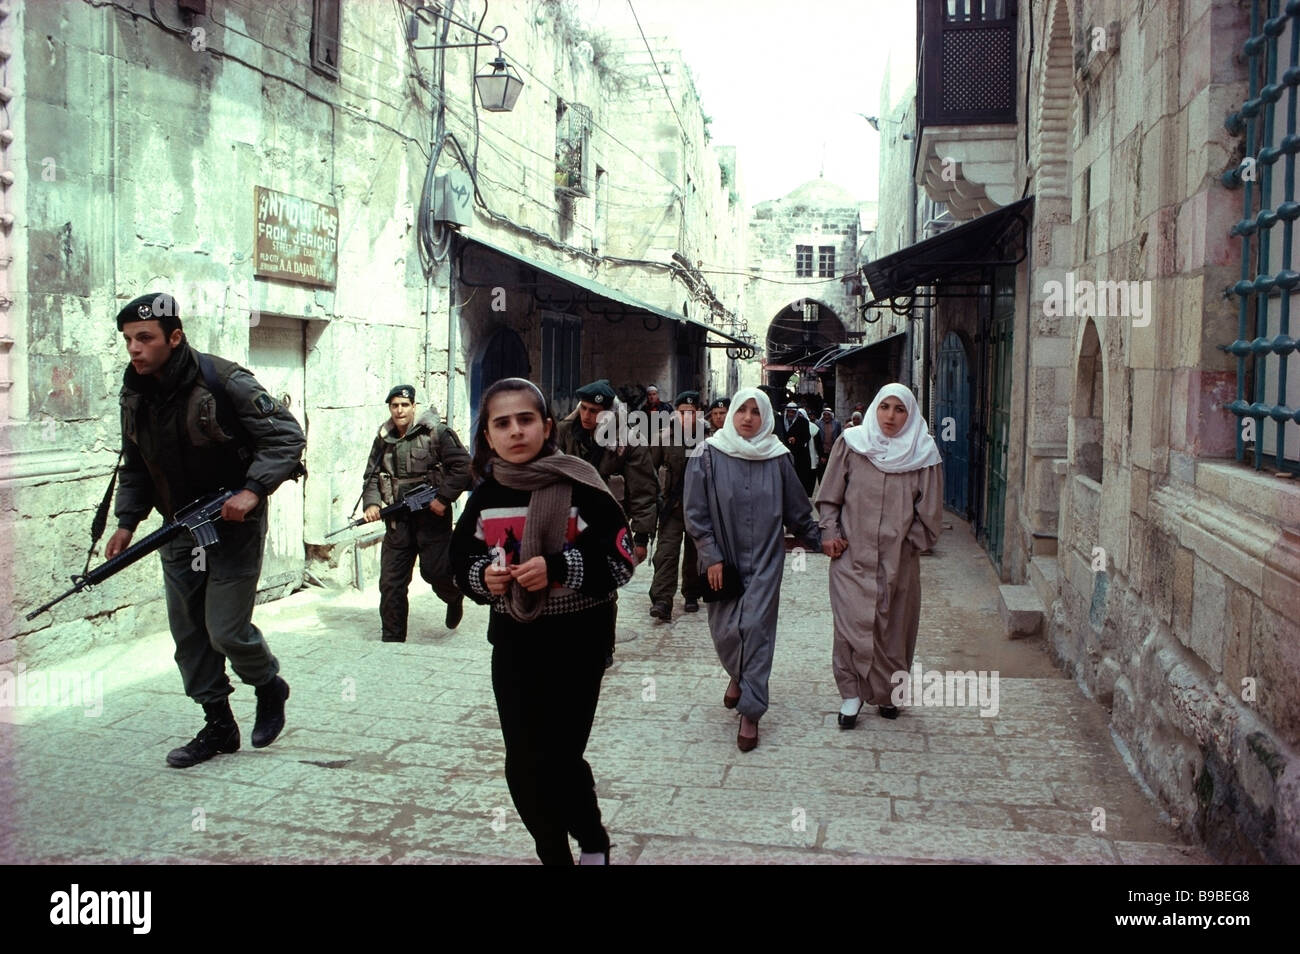 Palestinian School girl followed by two Palestinian women and Israeli soldiers on the Street of the Chain in Jerusalem,Israel. - Stock Image